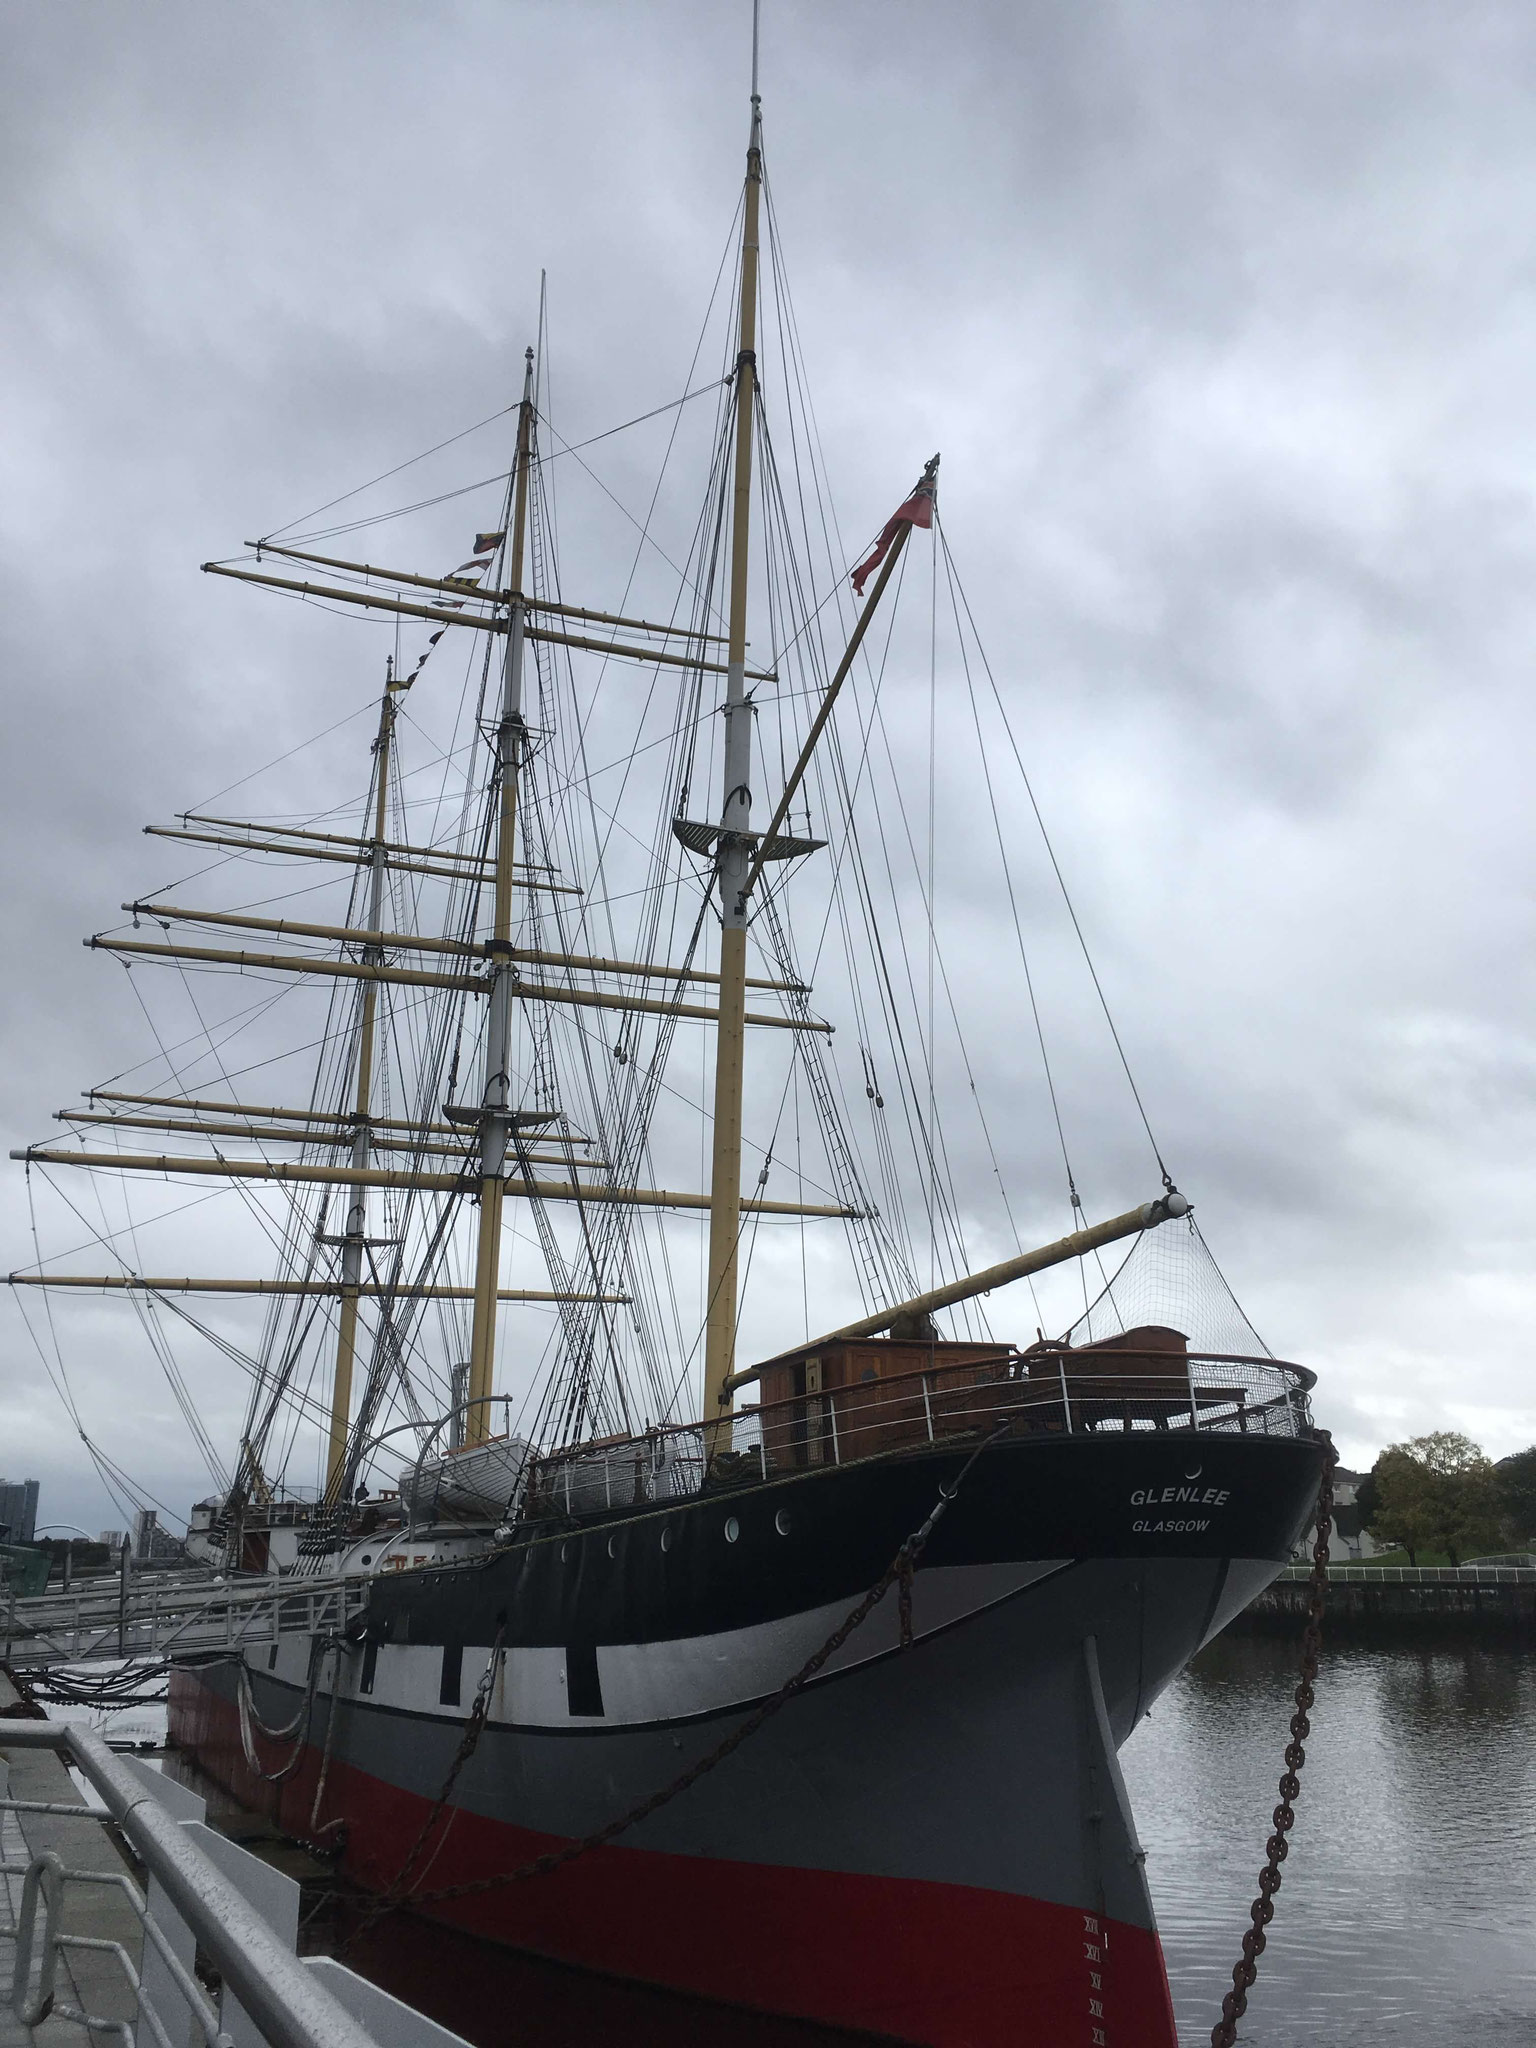 The tall ship Glenlee on the river Clyde in Glasgow